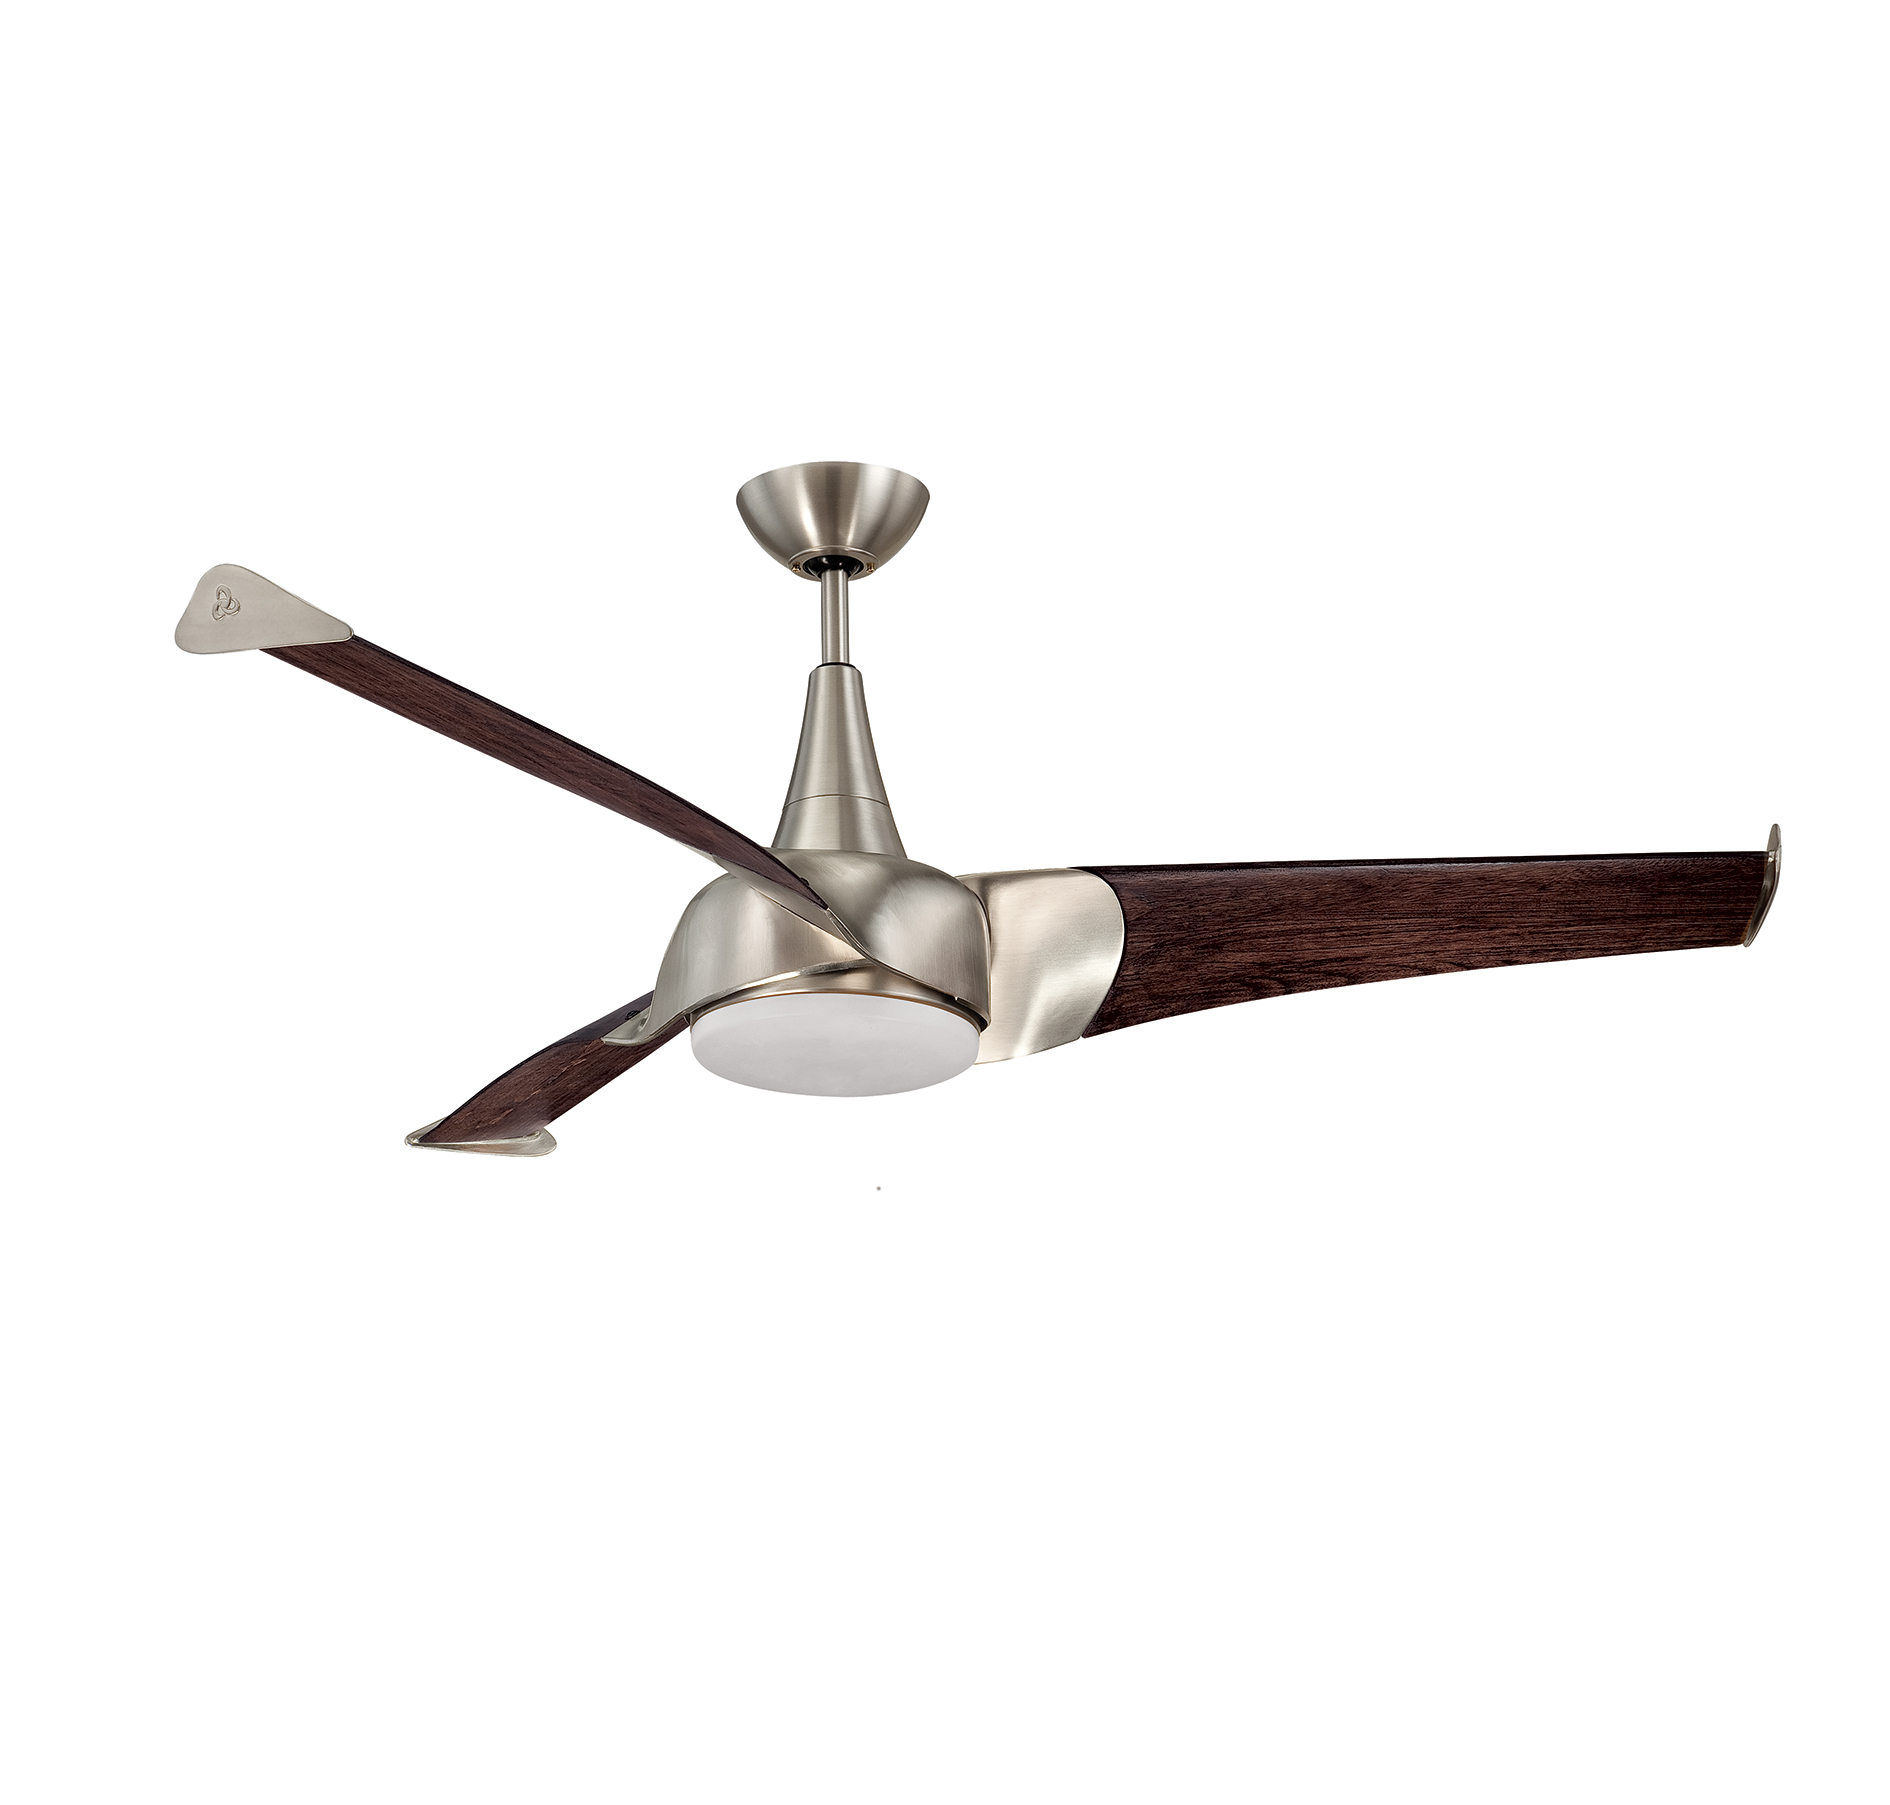 Ariel 3 Blade Ceiling Fan By Savoy House 55 818 3cn Sn